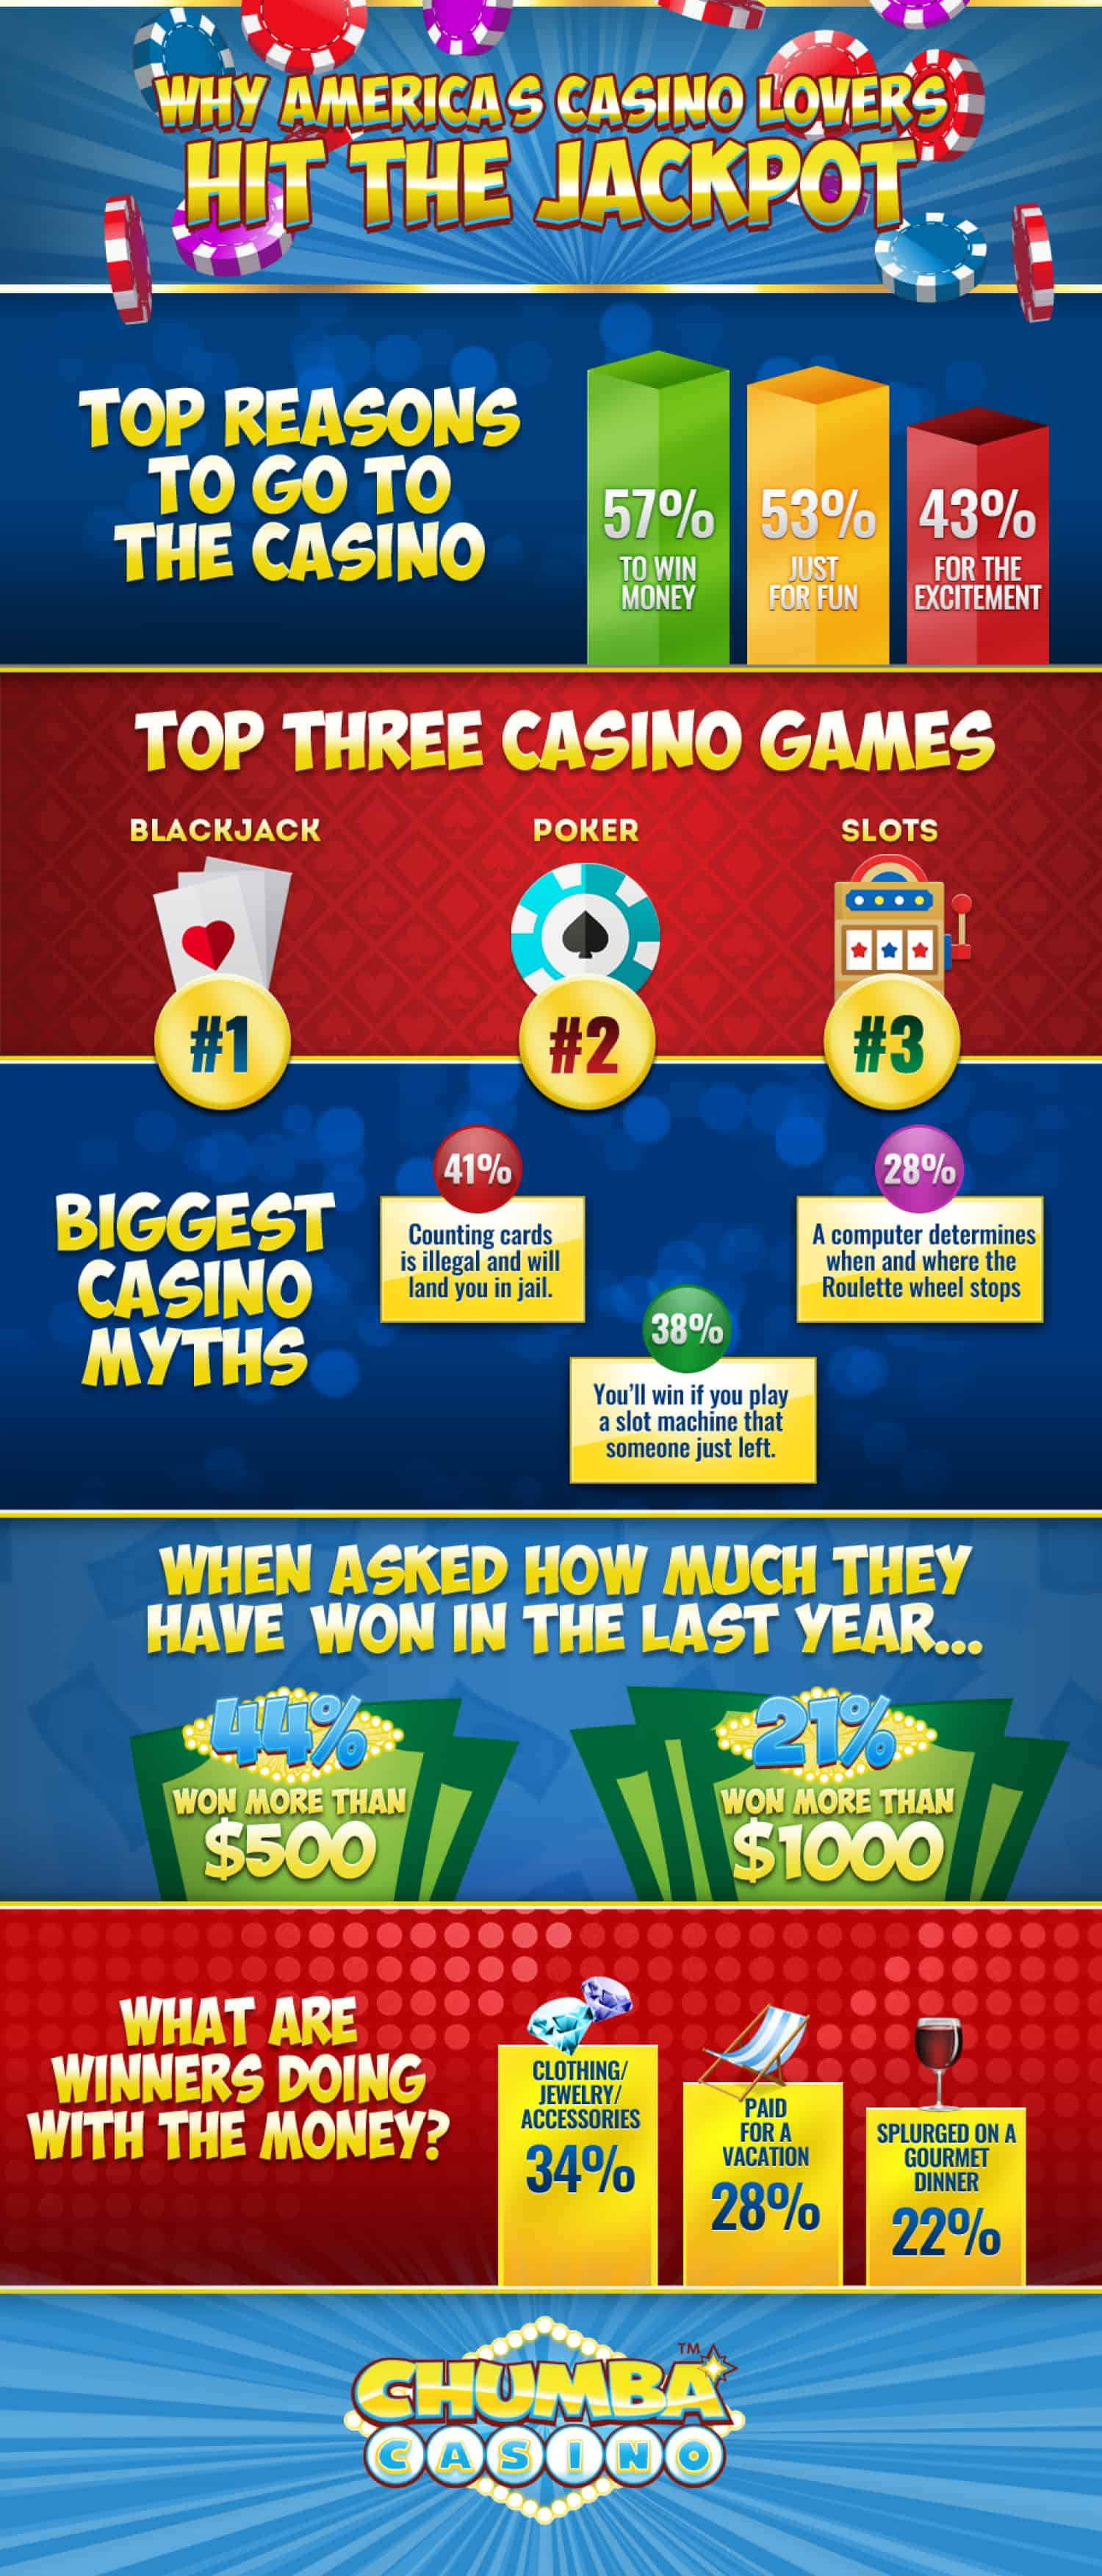 Reasons to go to Casino Infographic